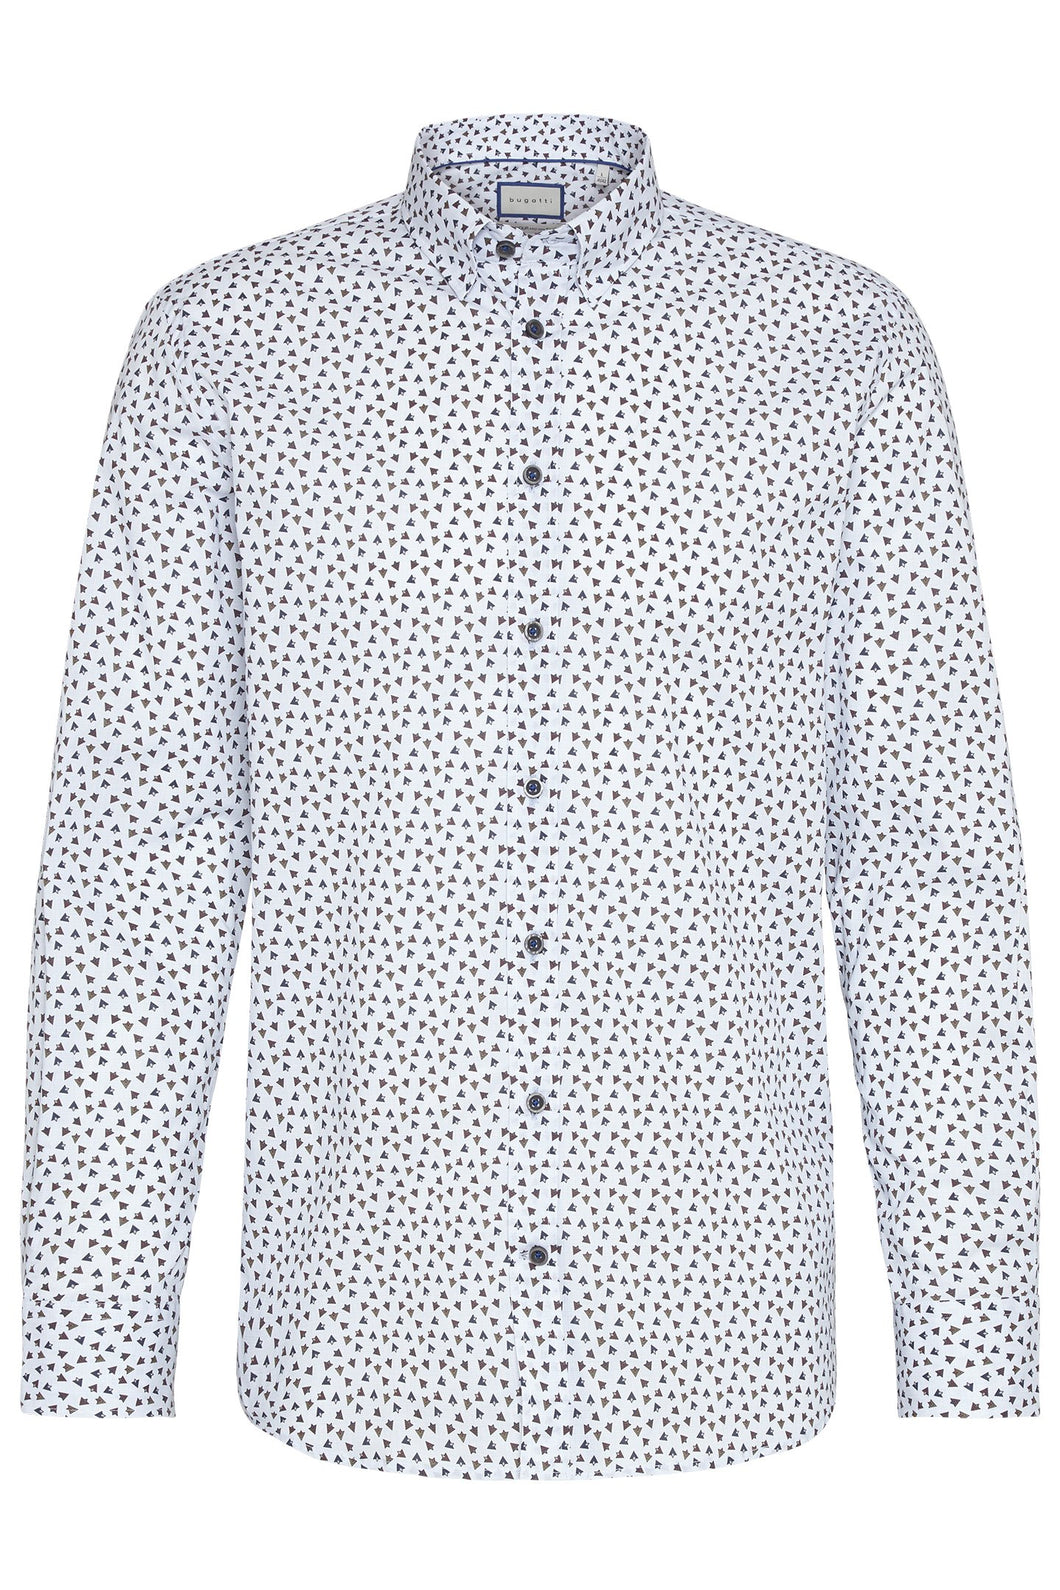 Bugatti - Blue Modern Fit Shirt, City Print - Tector Menswear